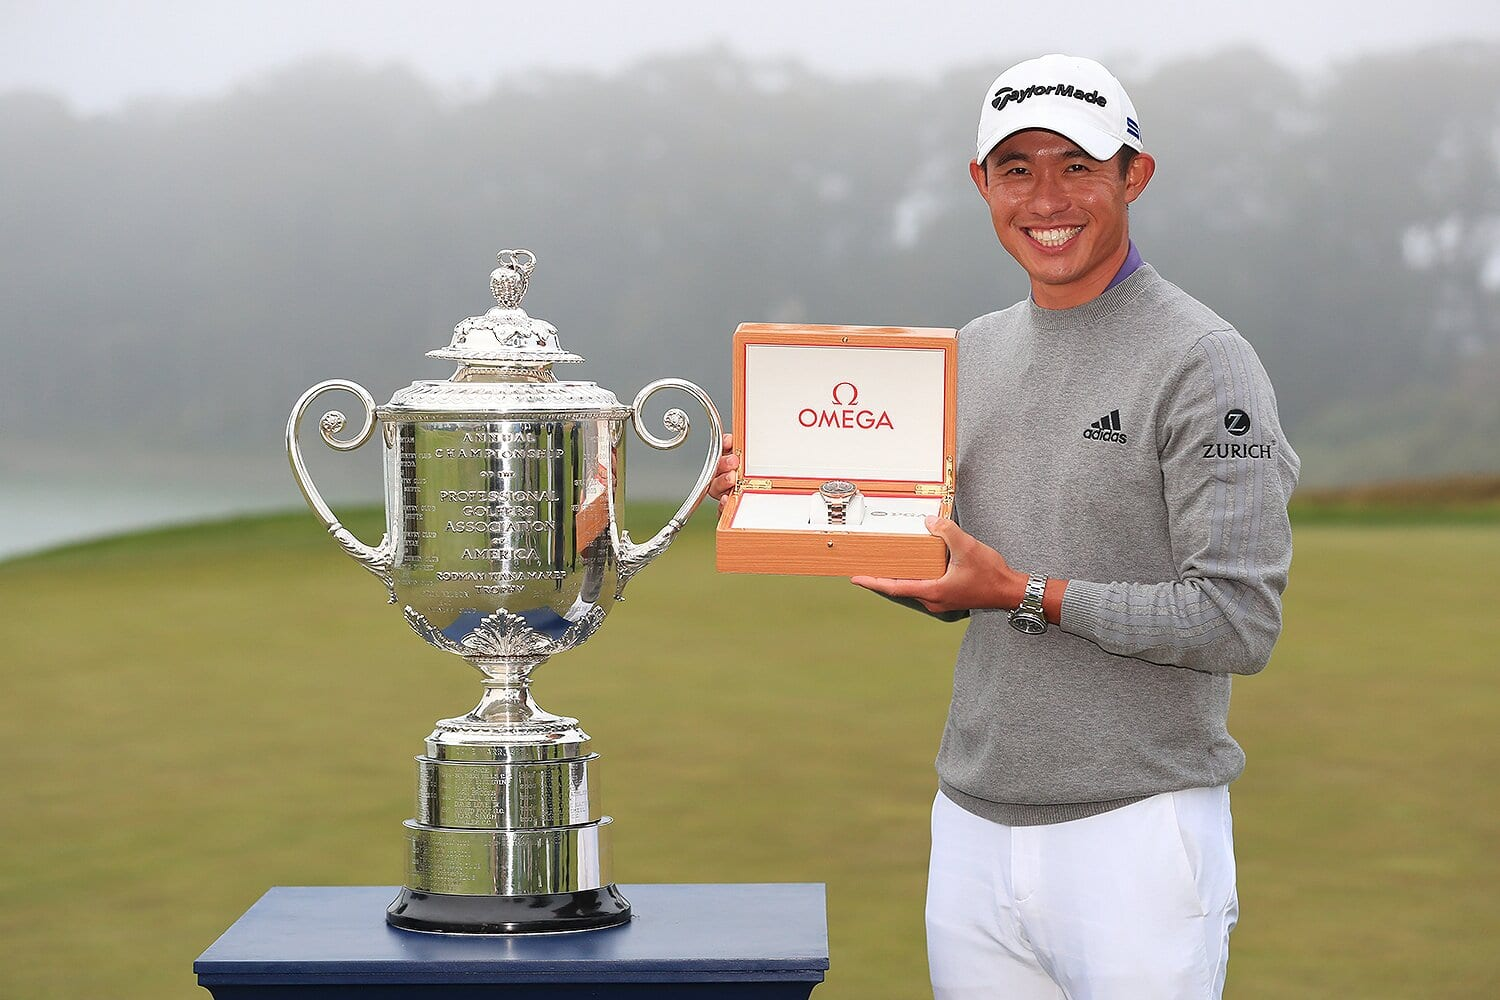 Collin Morikawa of the United States celebrates with the Wanamaker Trophy and the champion's watch after winning the 2020 PGA Championship at TPC Harding Park